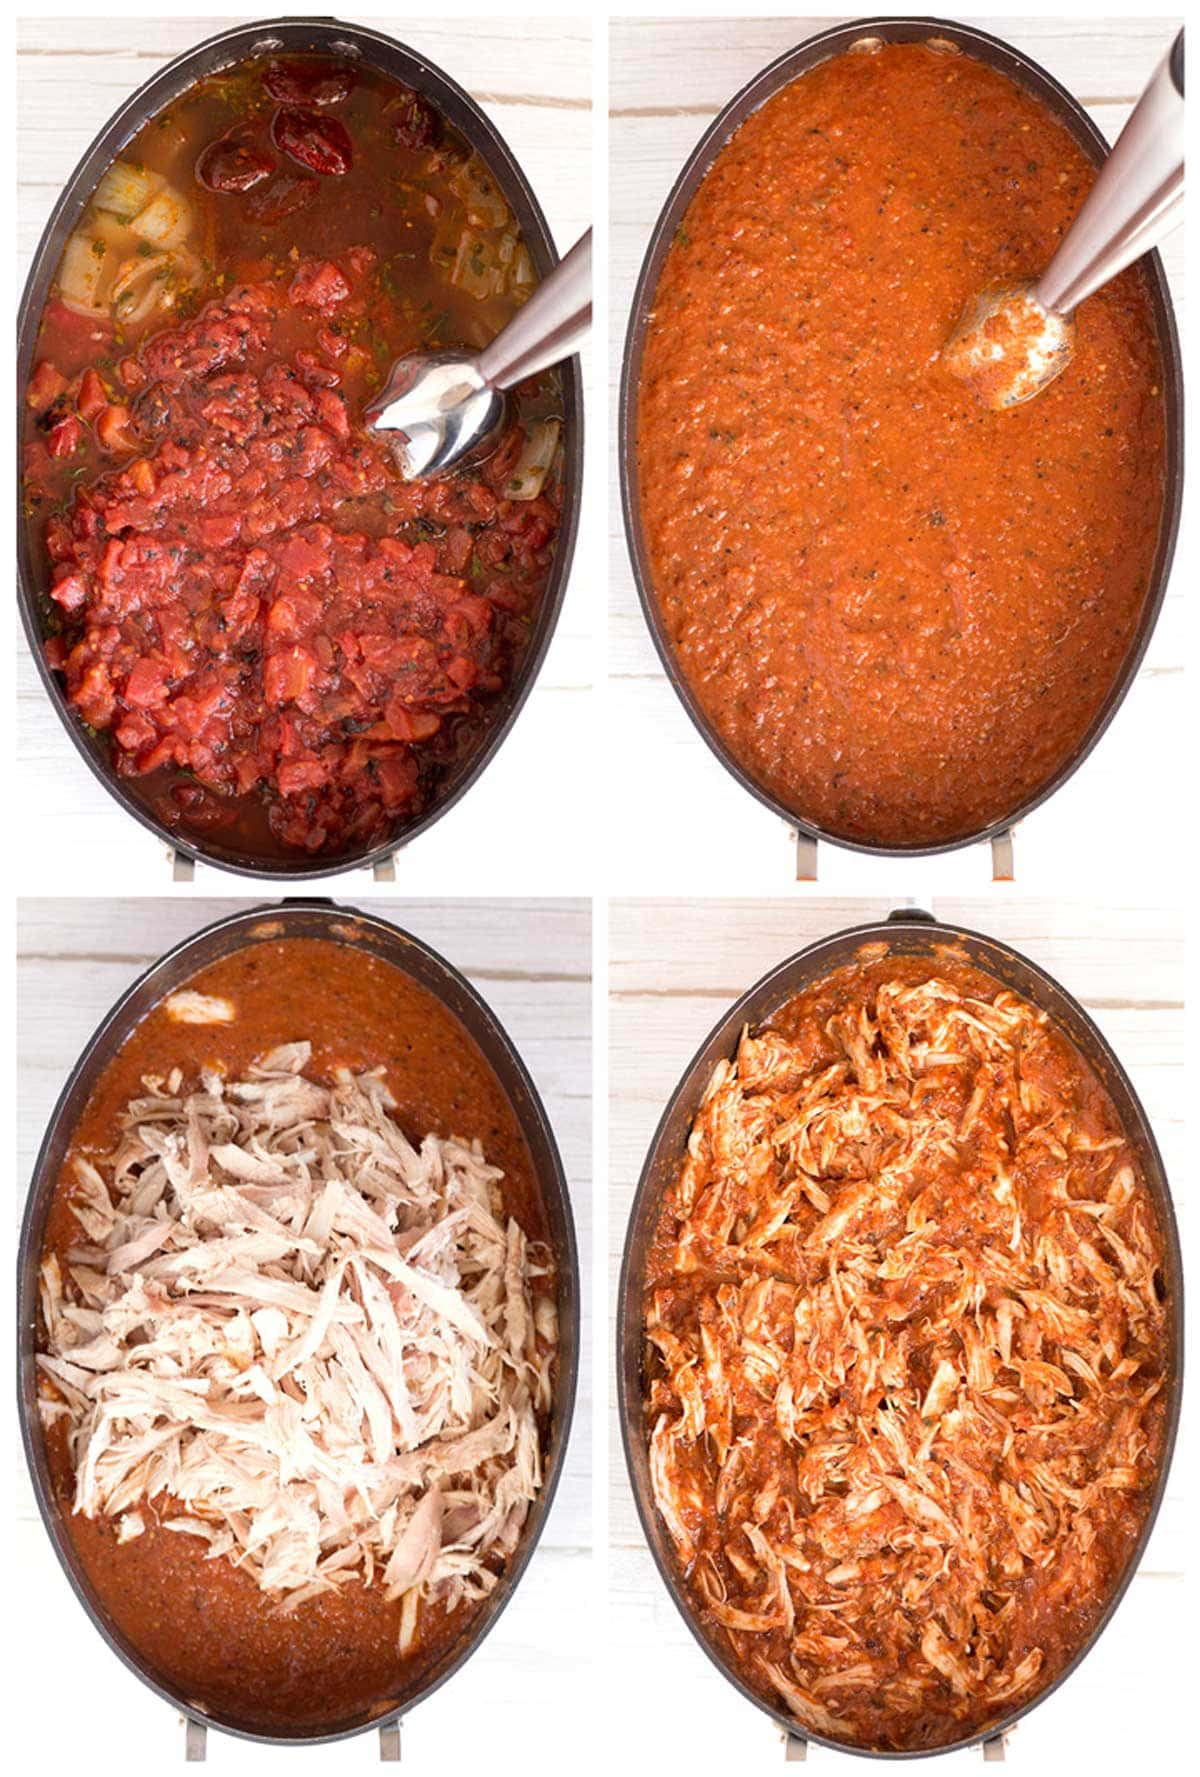 Step-by-step instructions for making tinga sauce with shredded rotisserie chicken.